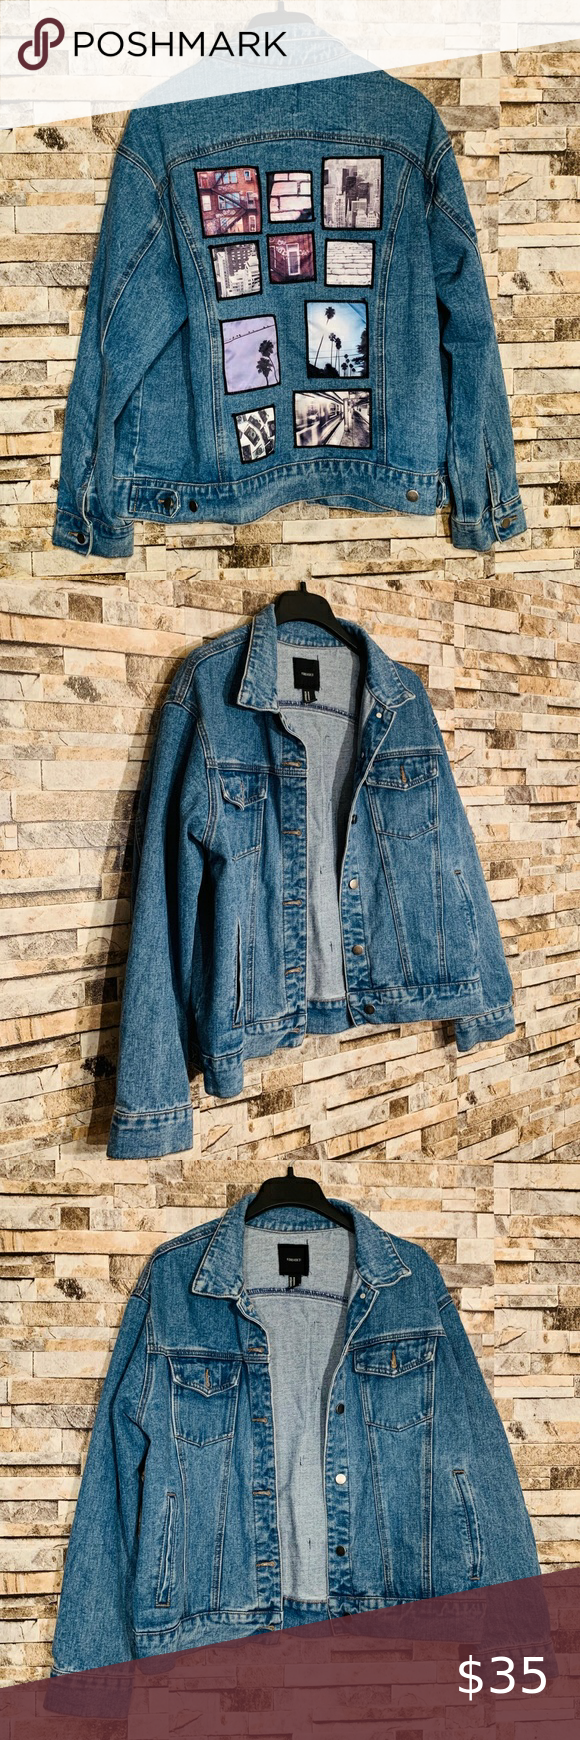 Forever 21 Polaroid Picture Jean Jacket Medium Wash Denim Full Front Buttons Oversized Fit Size Me Clothes Design Denim Jacket Oversized Denim Jacket [ 1740 x 580 Pixel ]